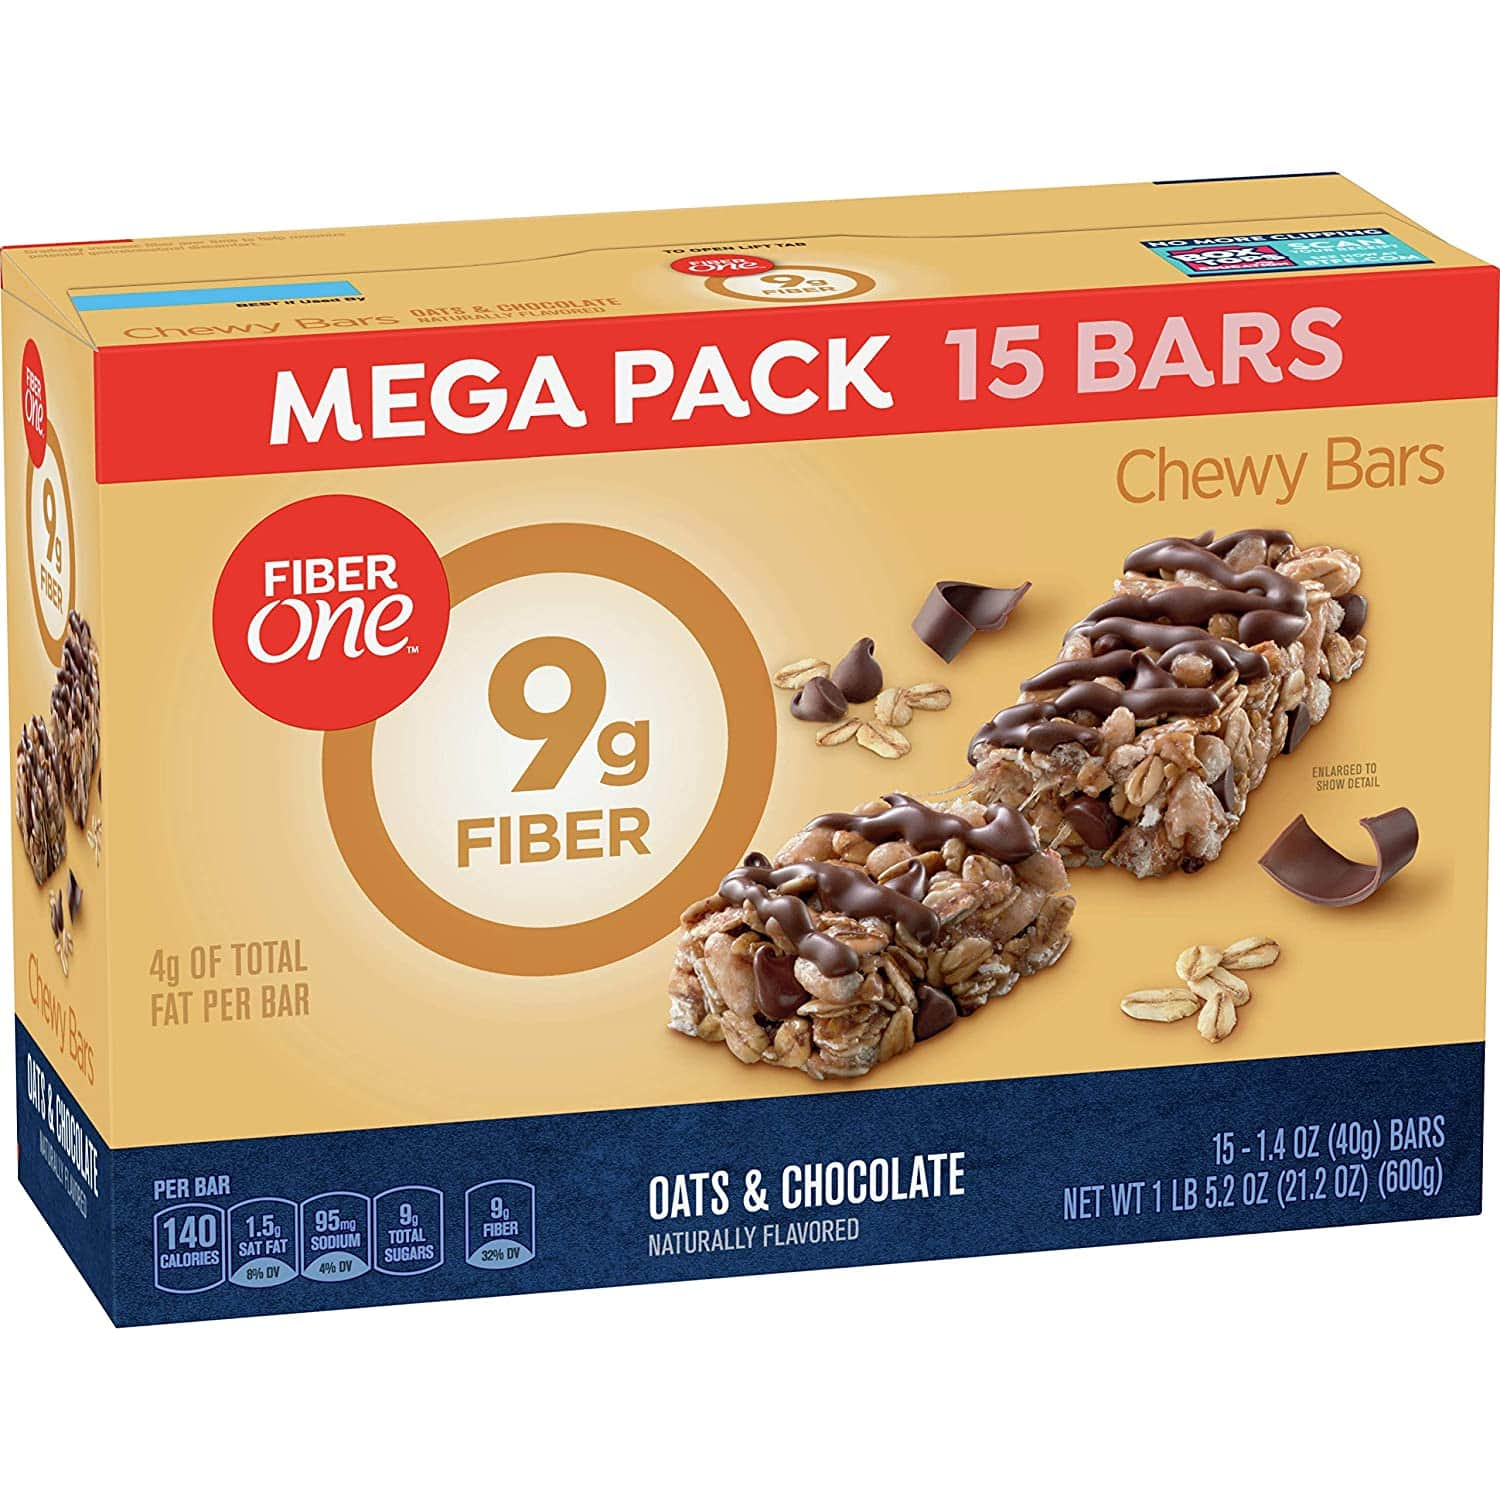 15-Count 1.4-Oz Fiber One Chewy Bars Mega Pack (Oats and Chocolate) $4.57 w/s&s